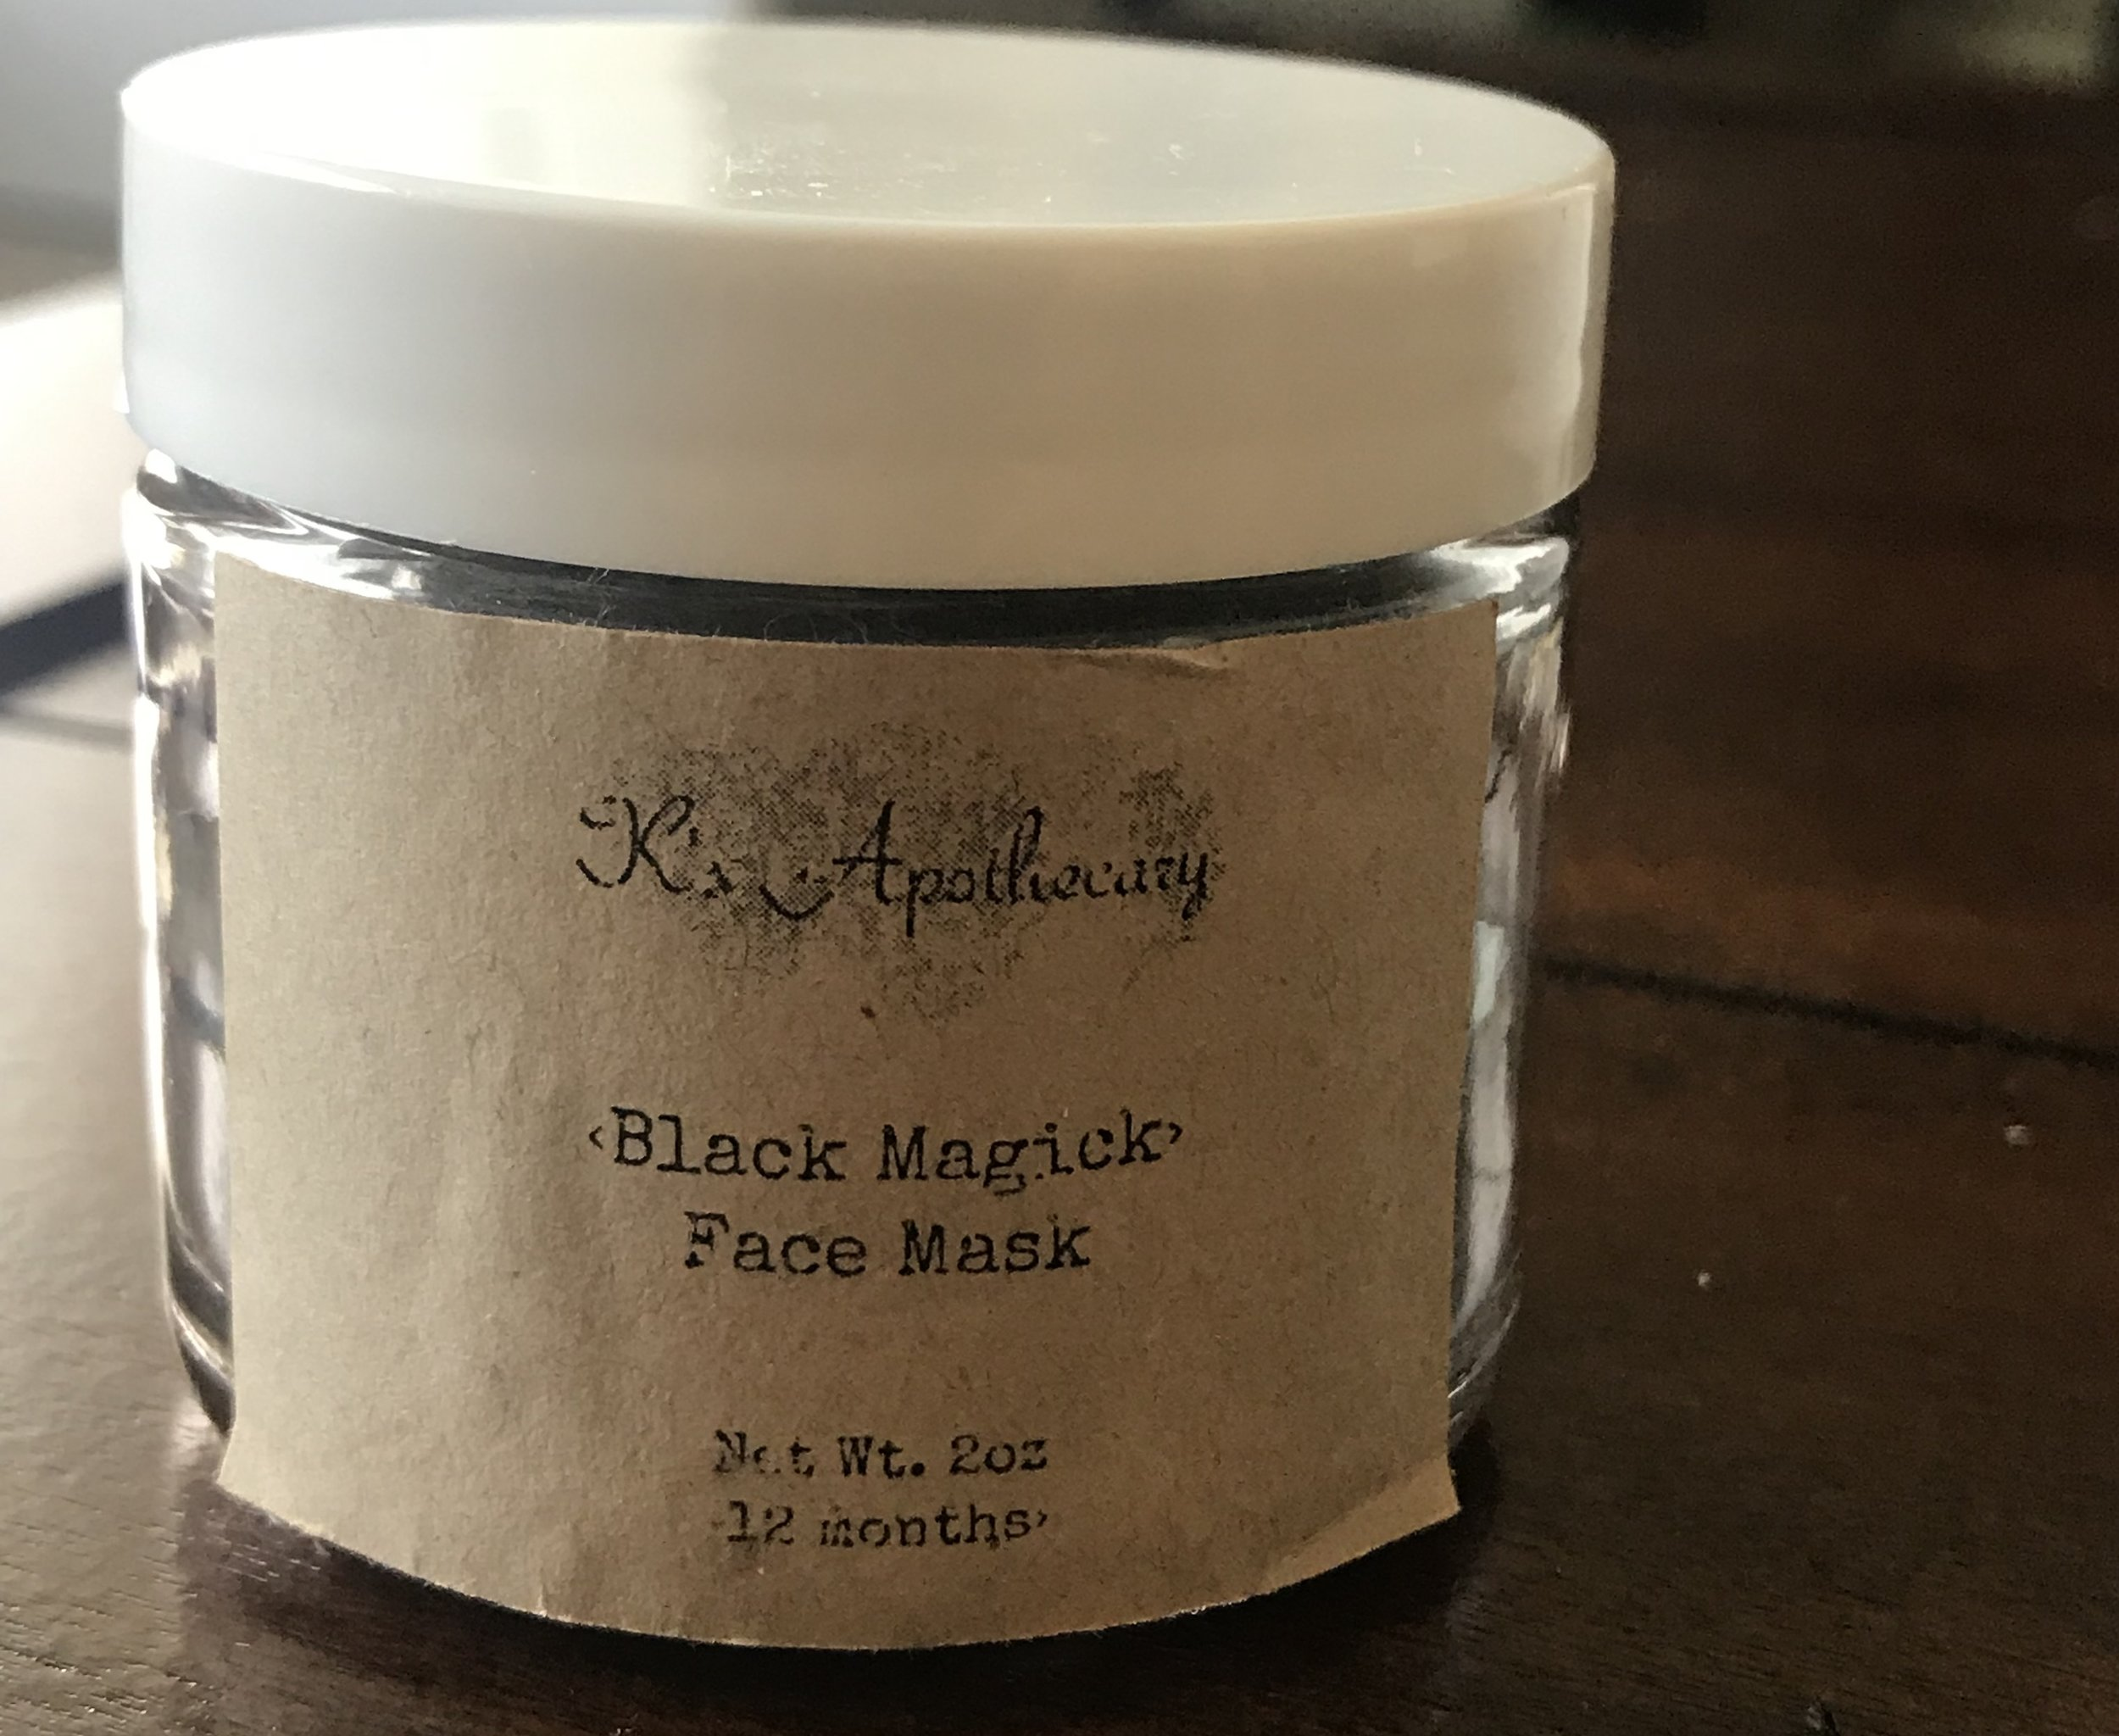 Serve up some self care with this amazing face mask <3